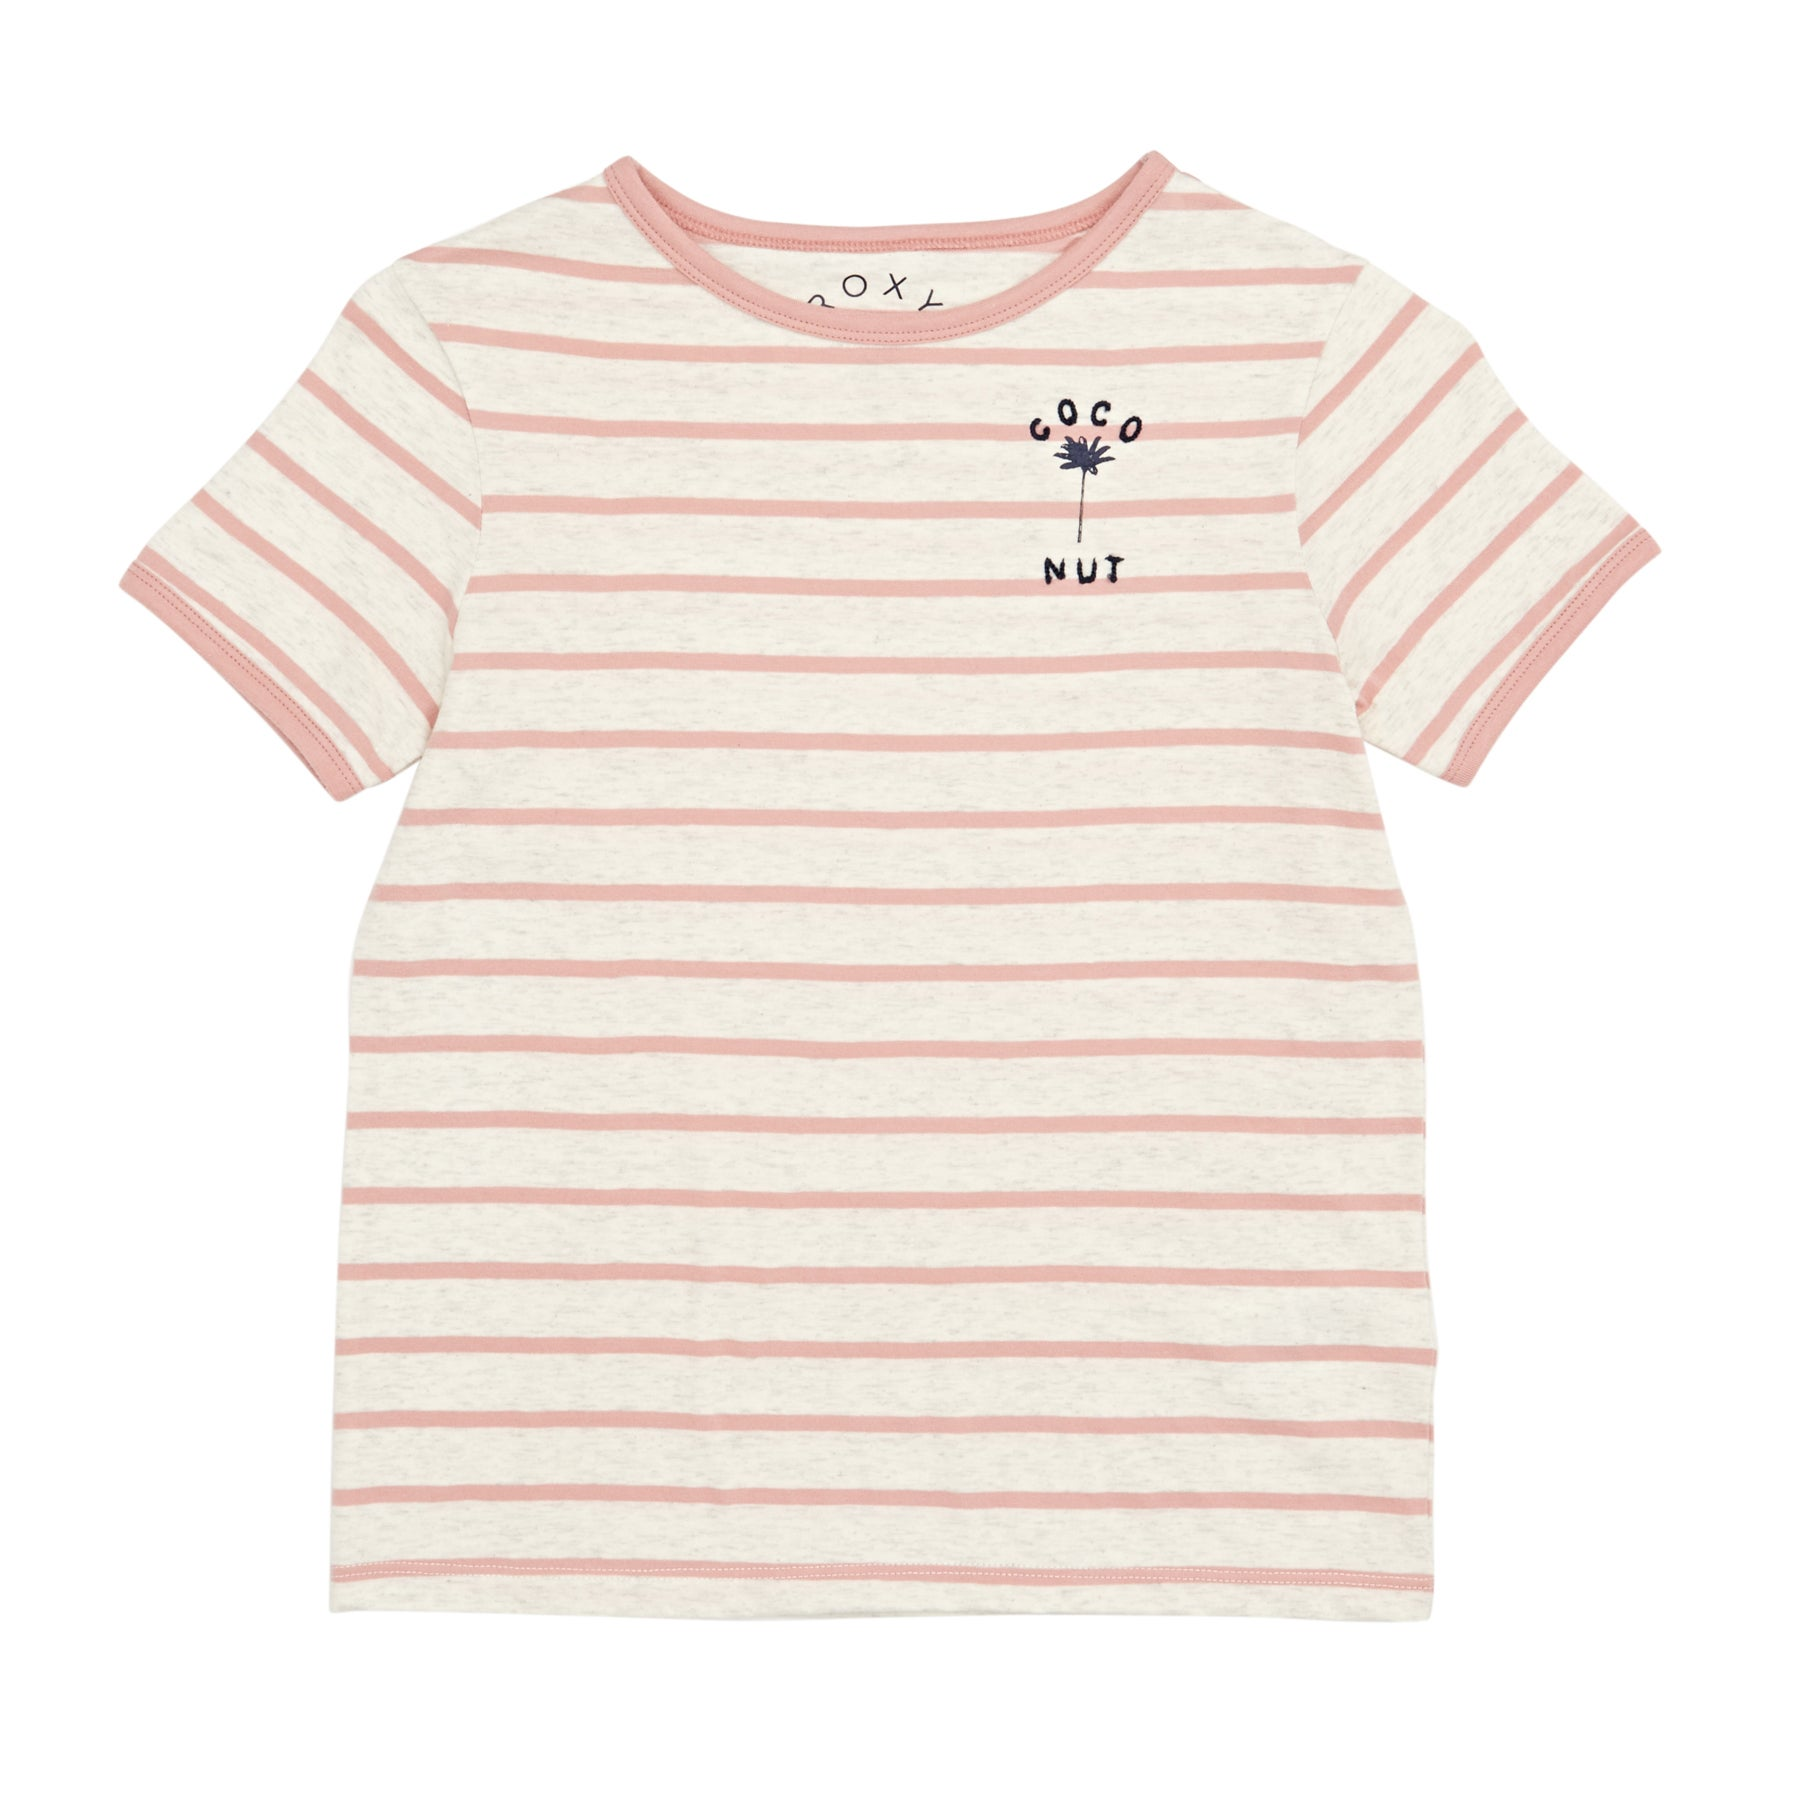 Roxy Telling Stories Girls Short Sleeve T-Shirt - Rose Tan Heather Nautic Stripe